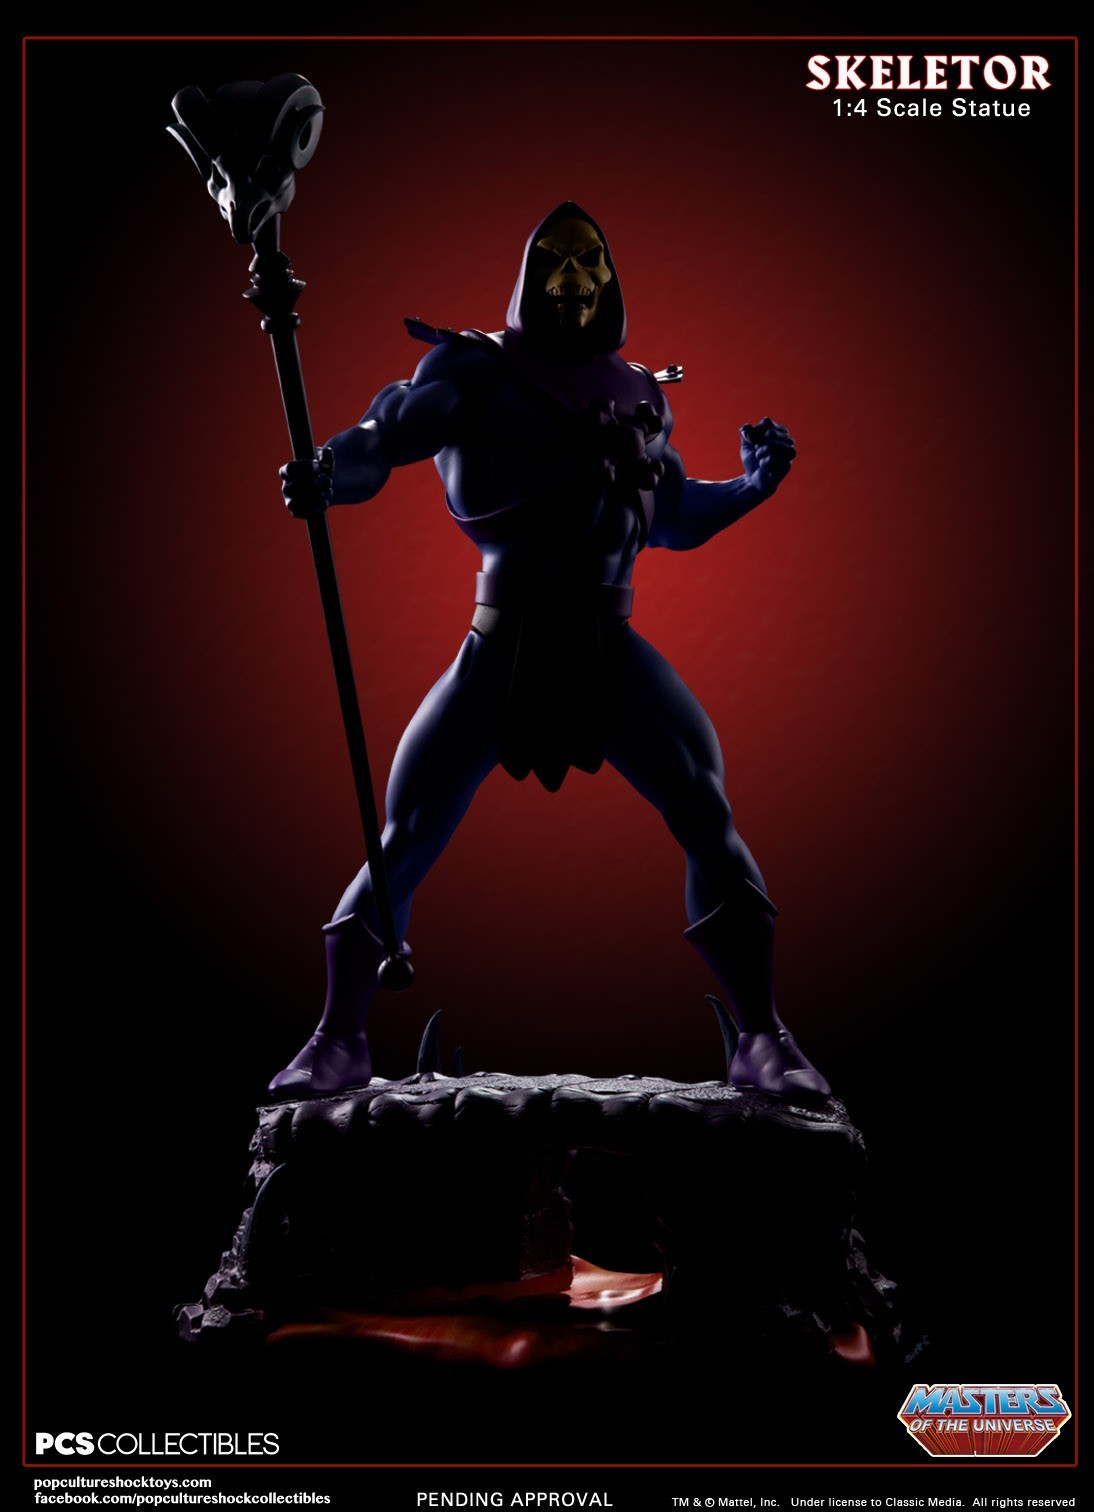 Alejandro pereira skeletor media o 1